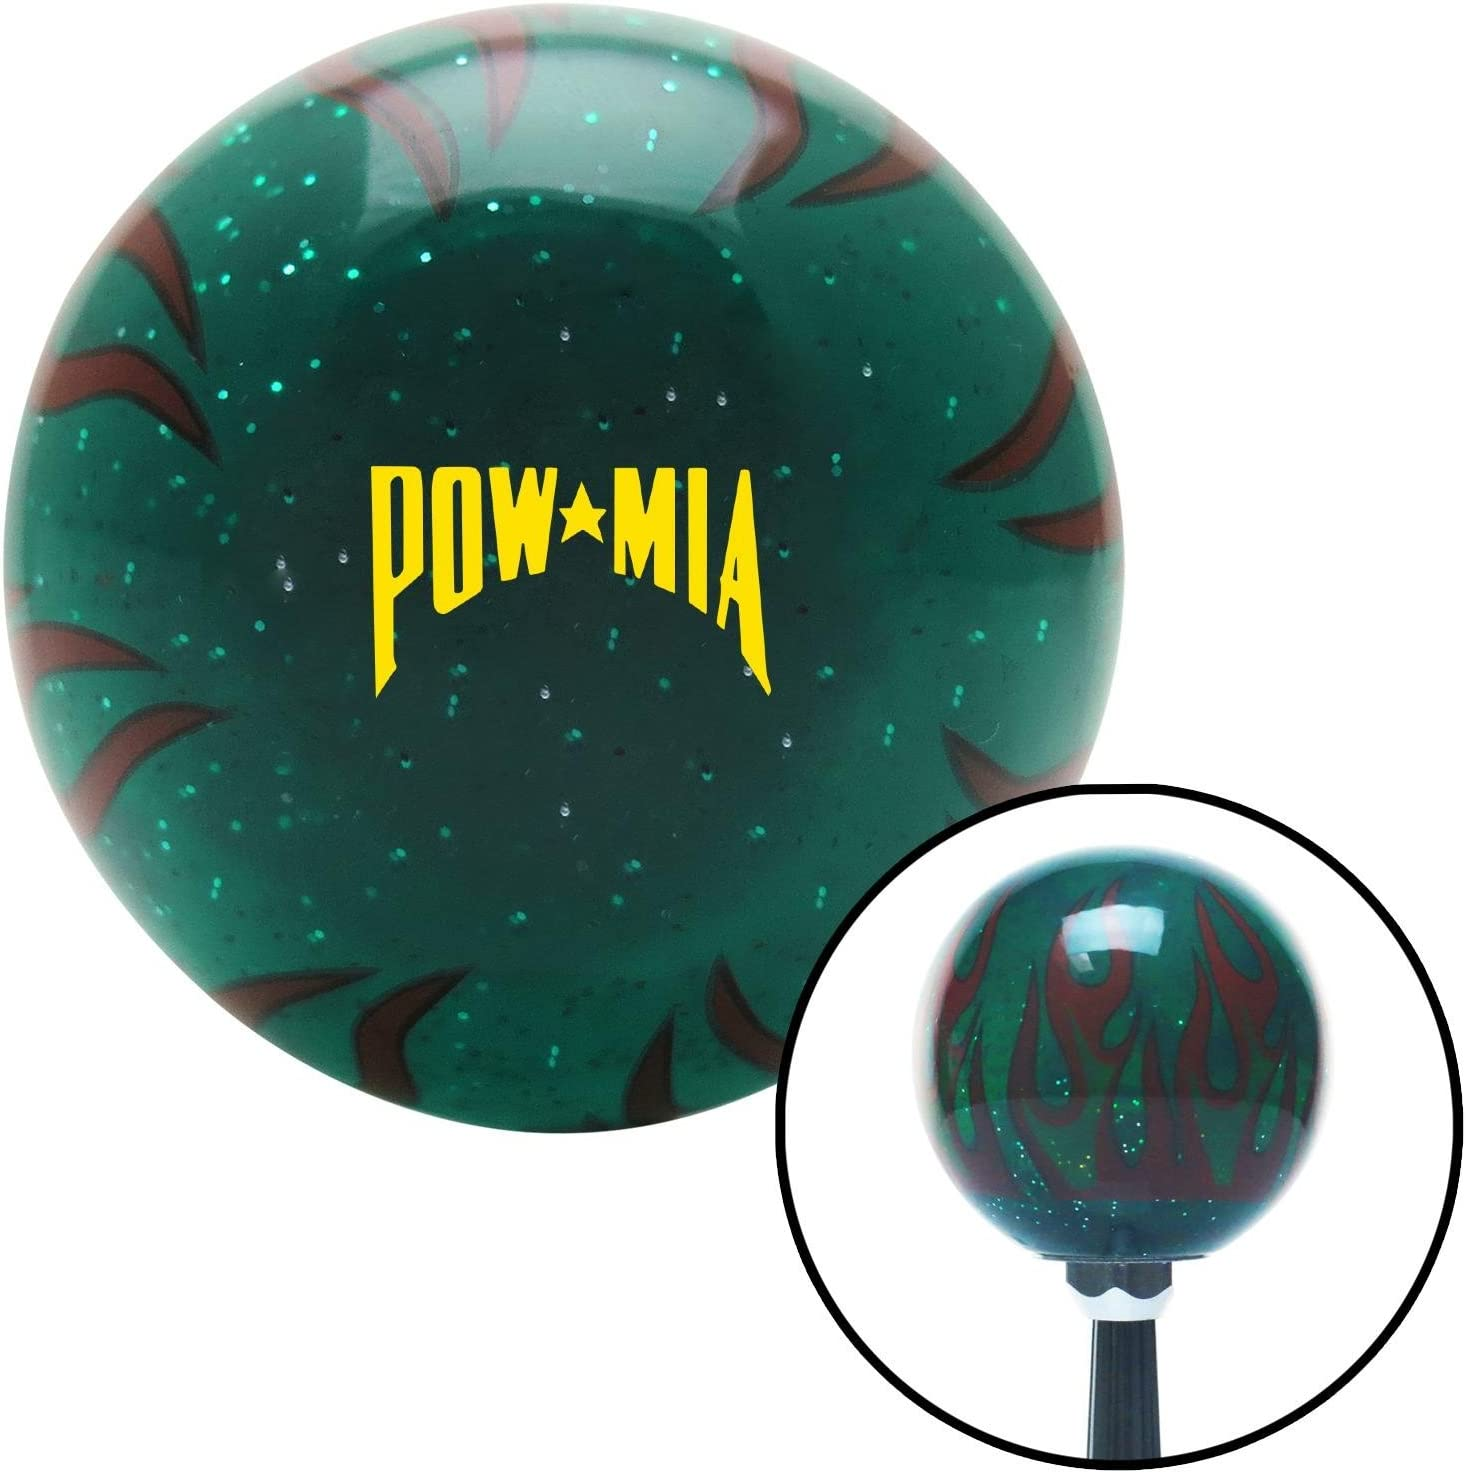 American Shifter 300605 Shift Knob Yellow Pow Mia Text Green Flame Metal Flake